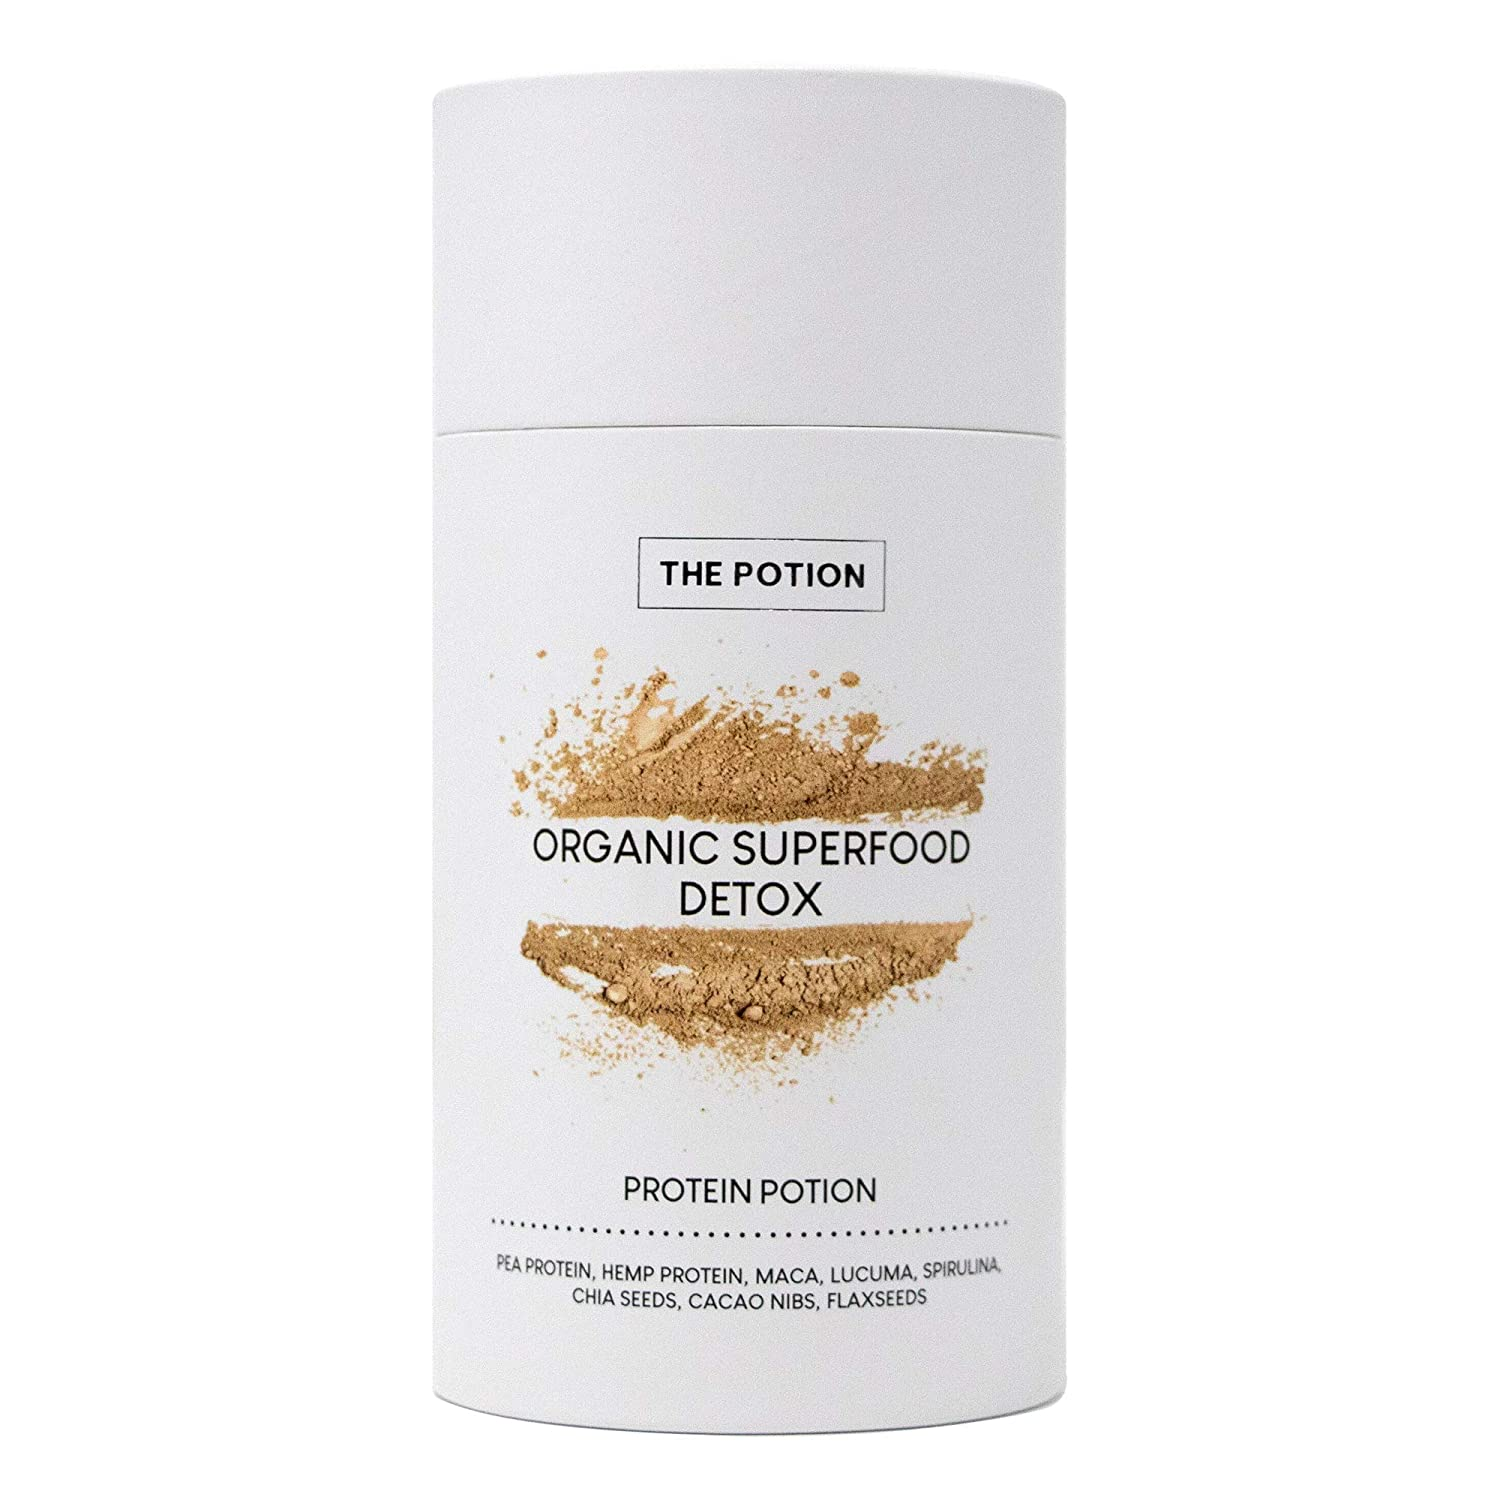 The Potion Protein Detox Superfood Powder Organic Meal Replacement, Natural Pre Post Workout Powder, Hemp, Spirulina, Maca, Pea, Chia Seeds, Amino Acids Boosts Energy, Immunity 30 Servings